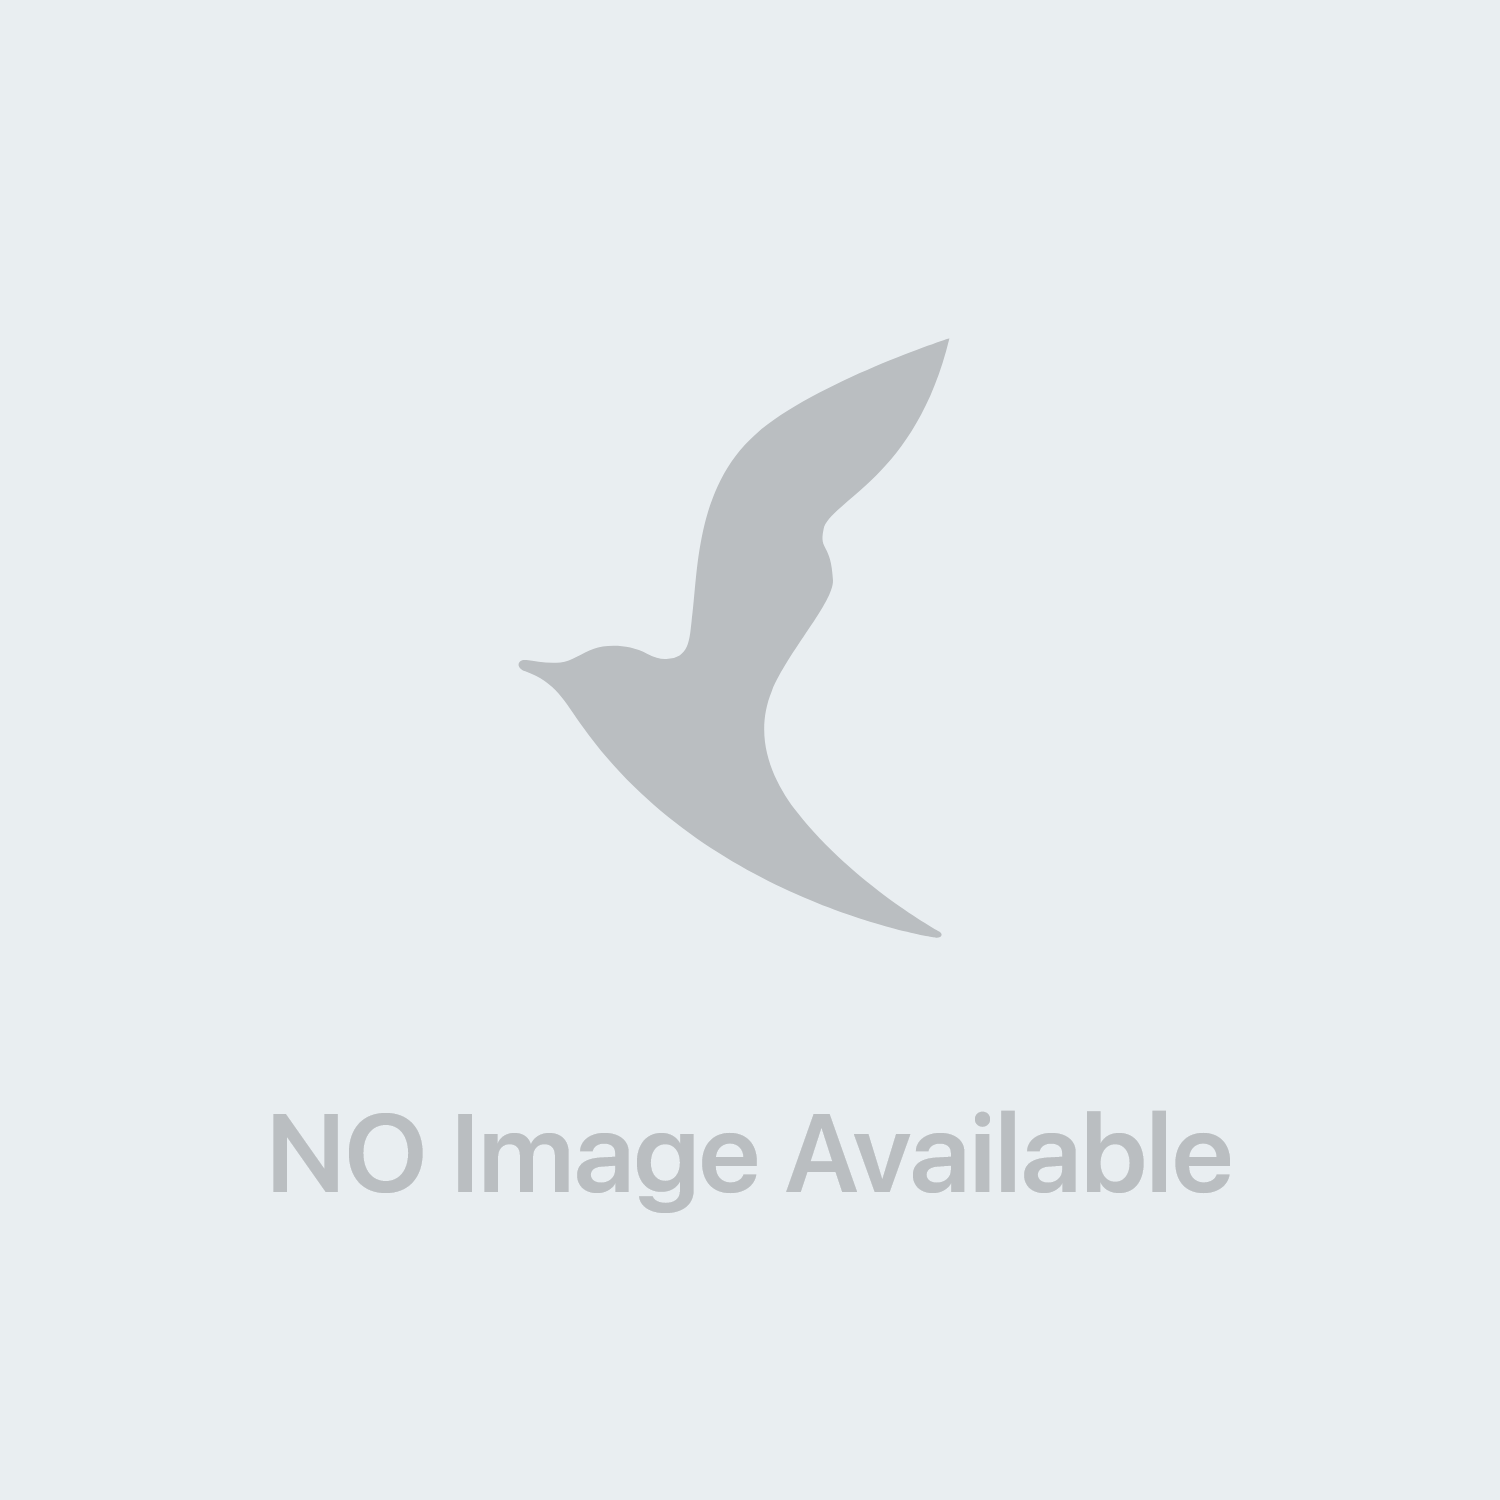 Gum Kids Dentifricio 2/6 Anni 50 Ml